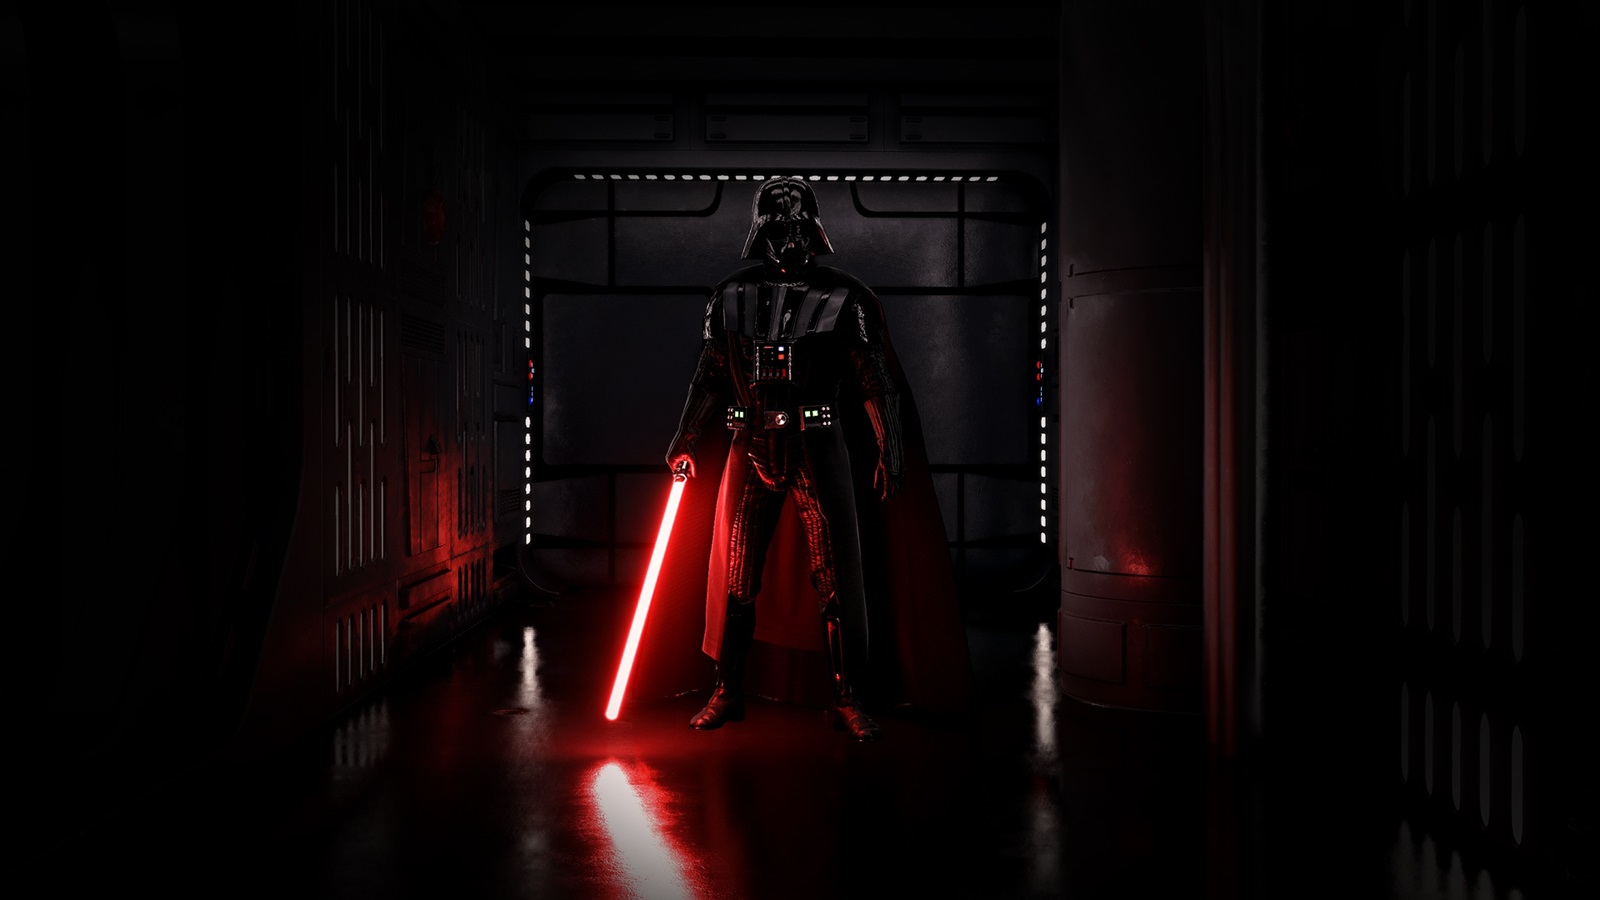 darth vader 4k wallpaper